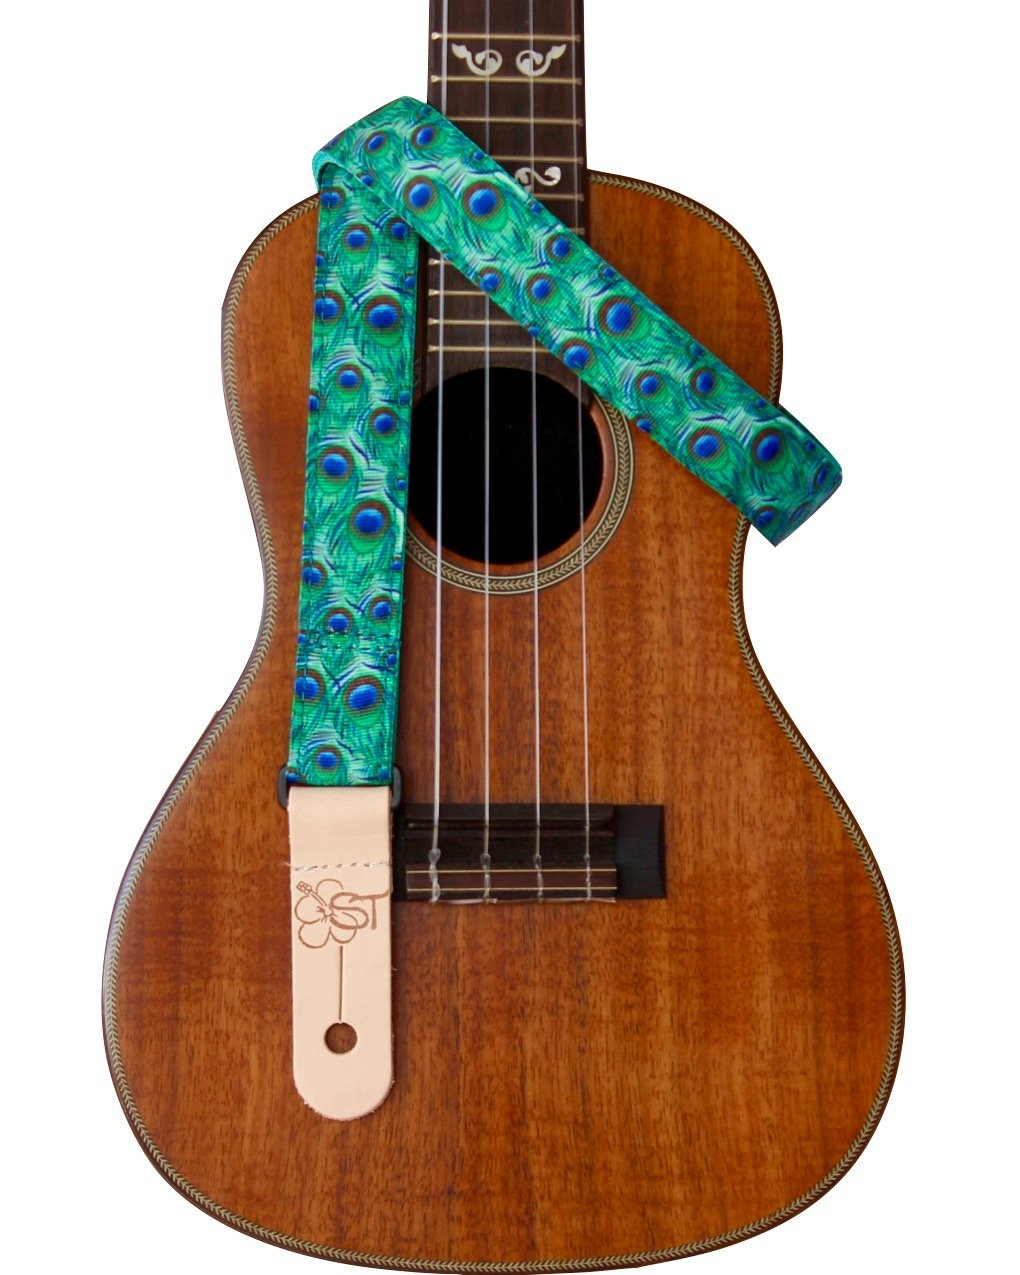 Preowned ST 1 Ukulele Strap - Peacock Feathers